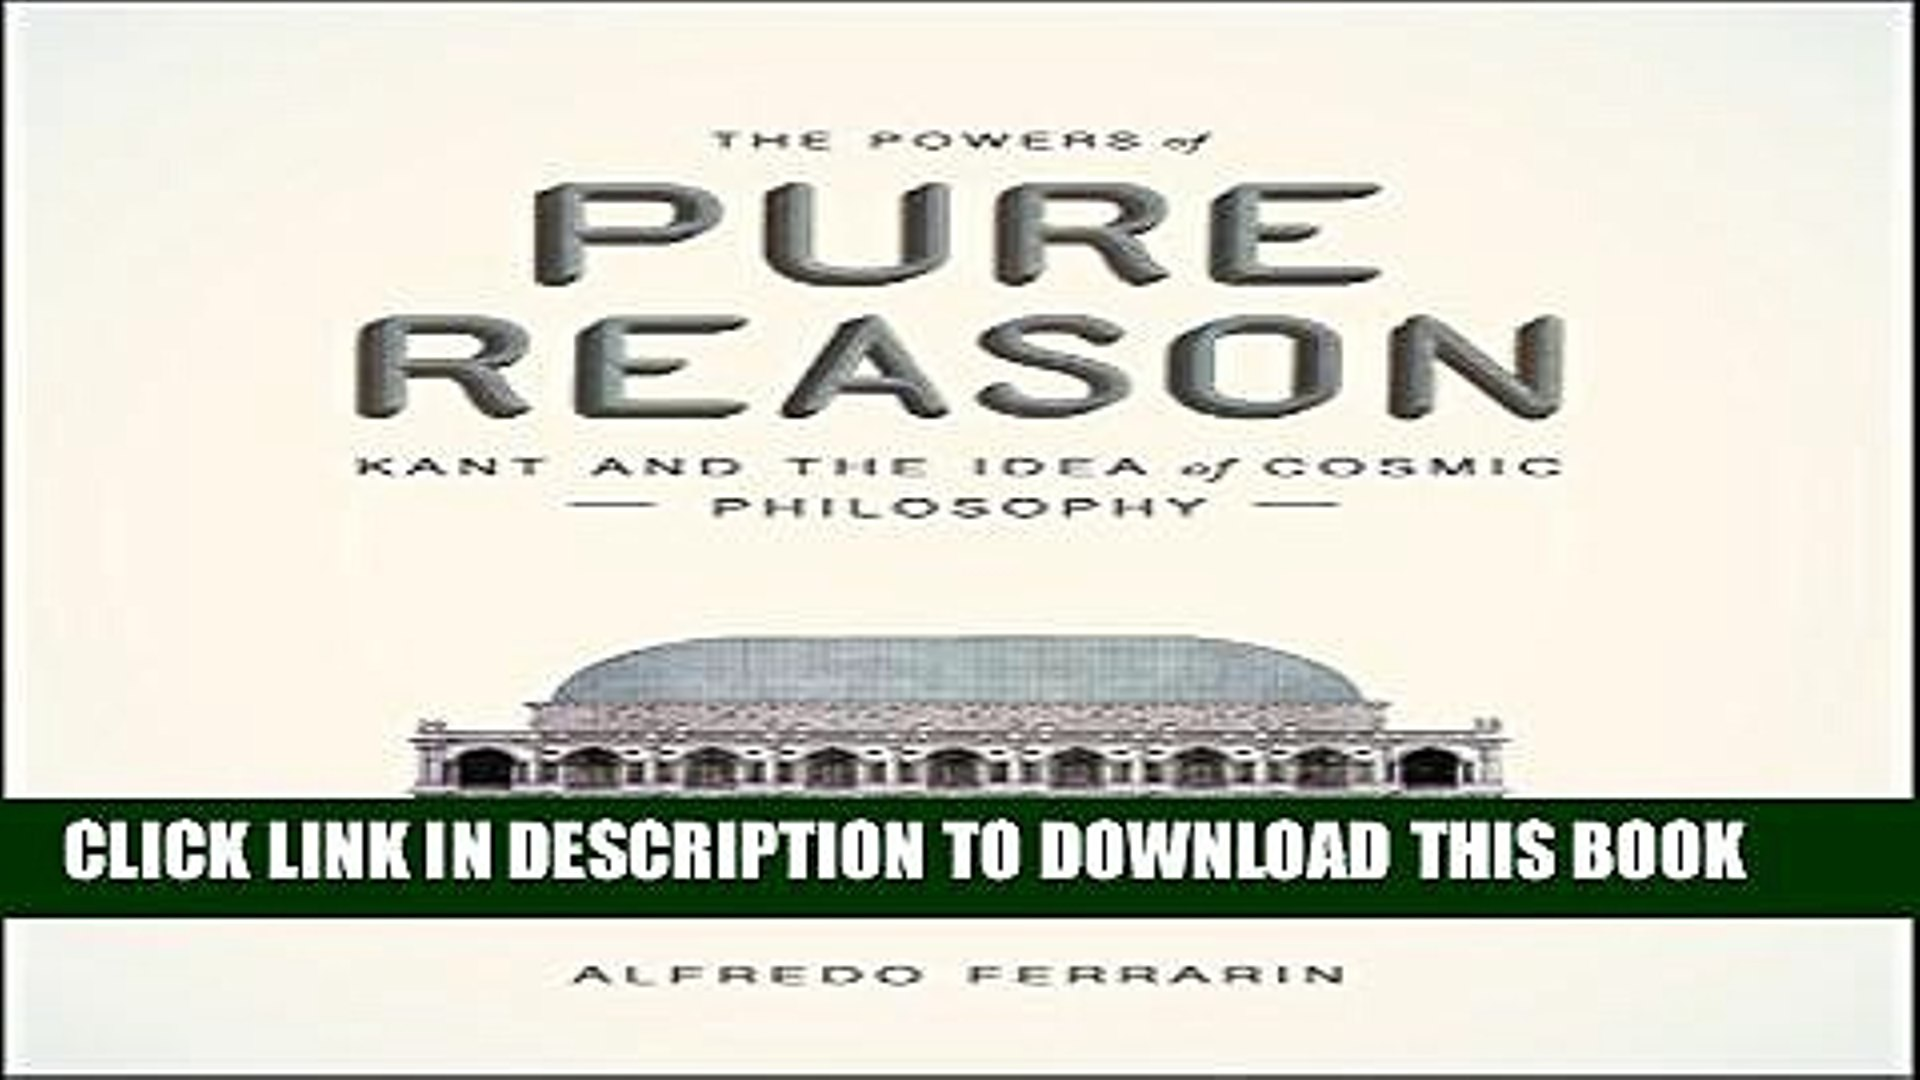 [PDF] The Powers of Pure Reason: Kant and the Idea of Cosmic Philosophy  Full Online - video dailymotion